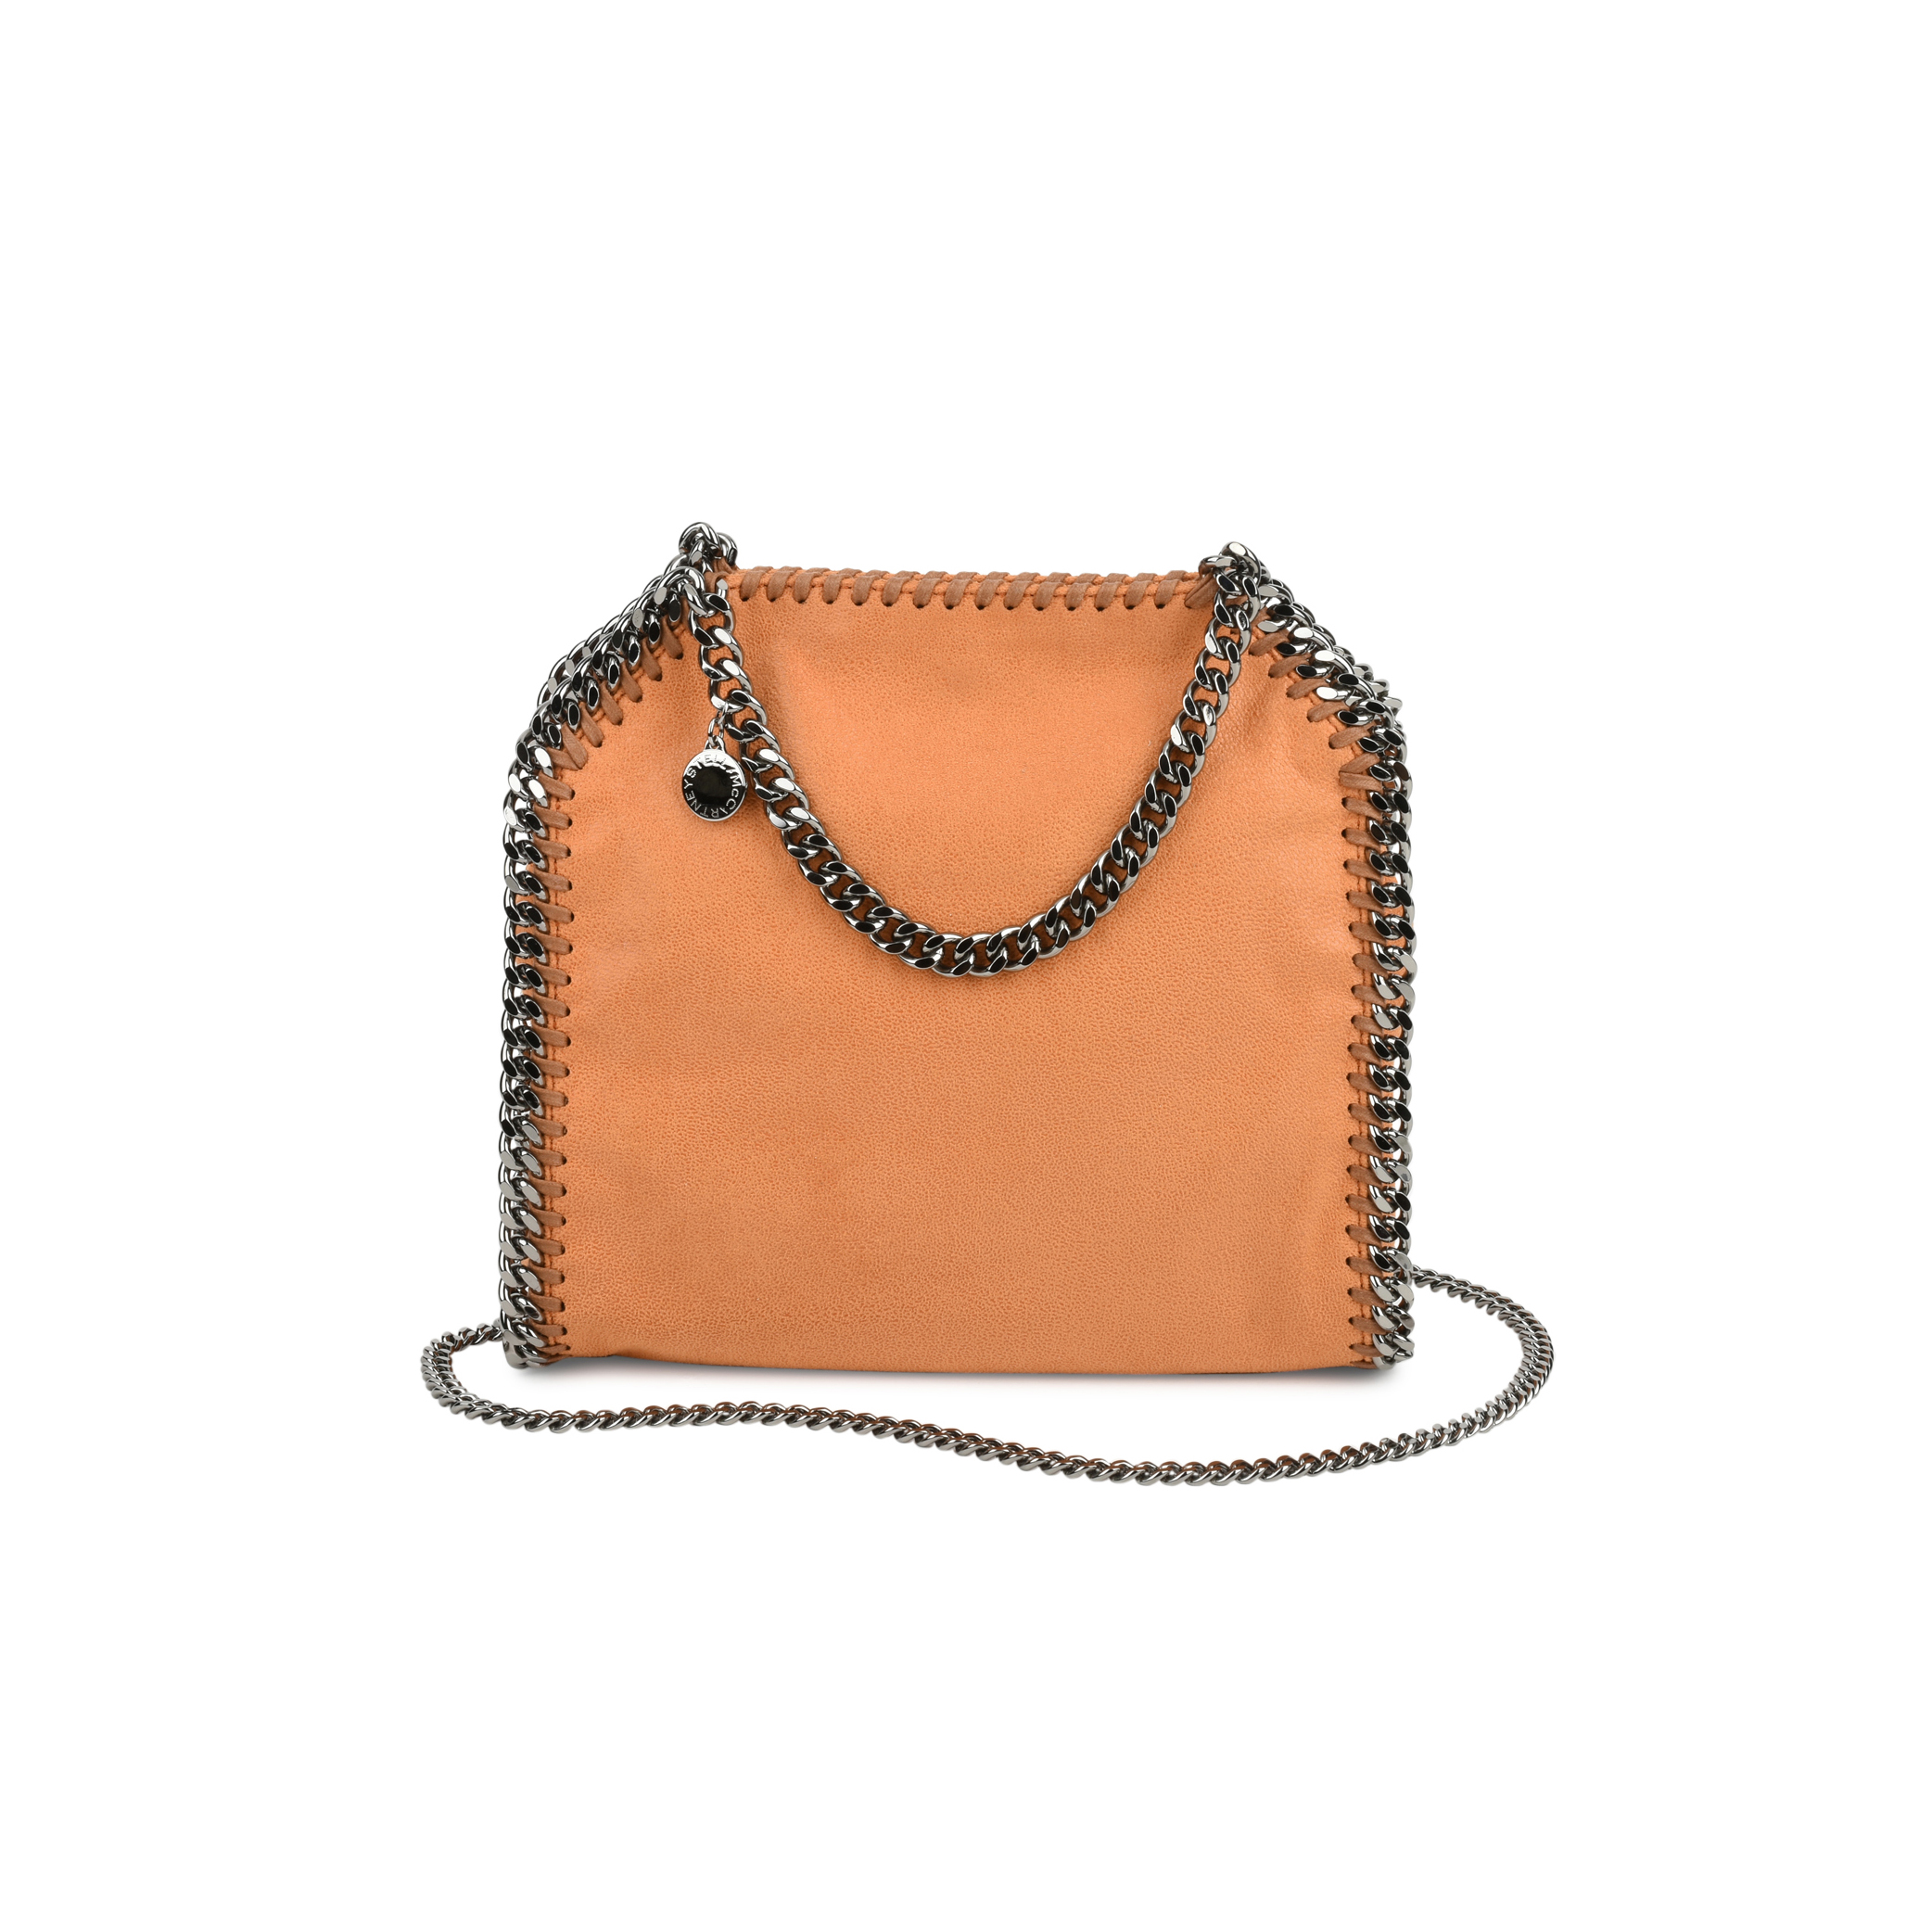 26cfede48ee4 Authentic Second Hand Stella McCartney Falabella Mini Tote Bag  (PSS-126-00068)